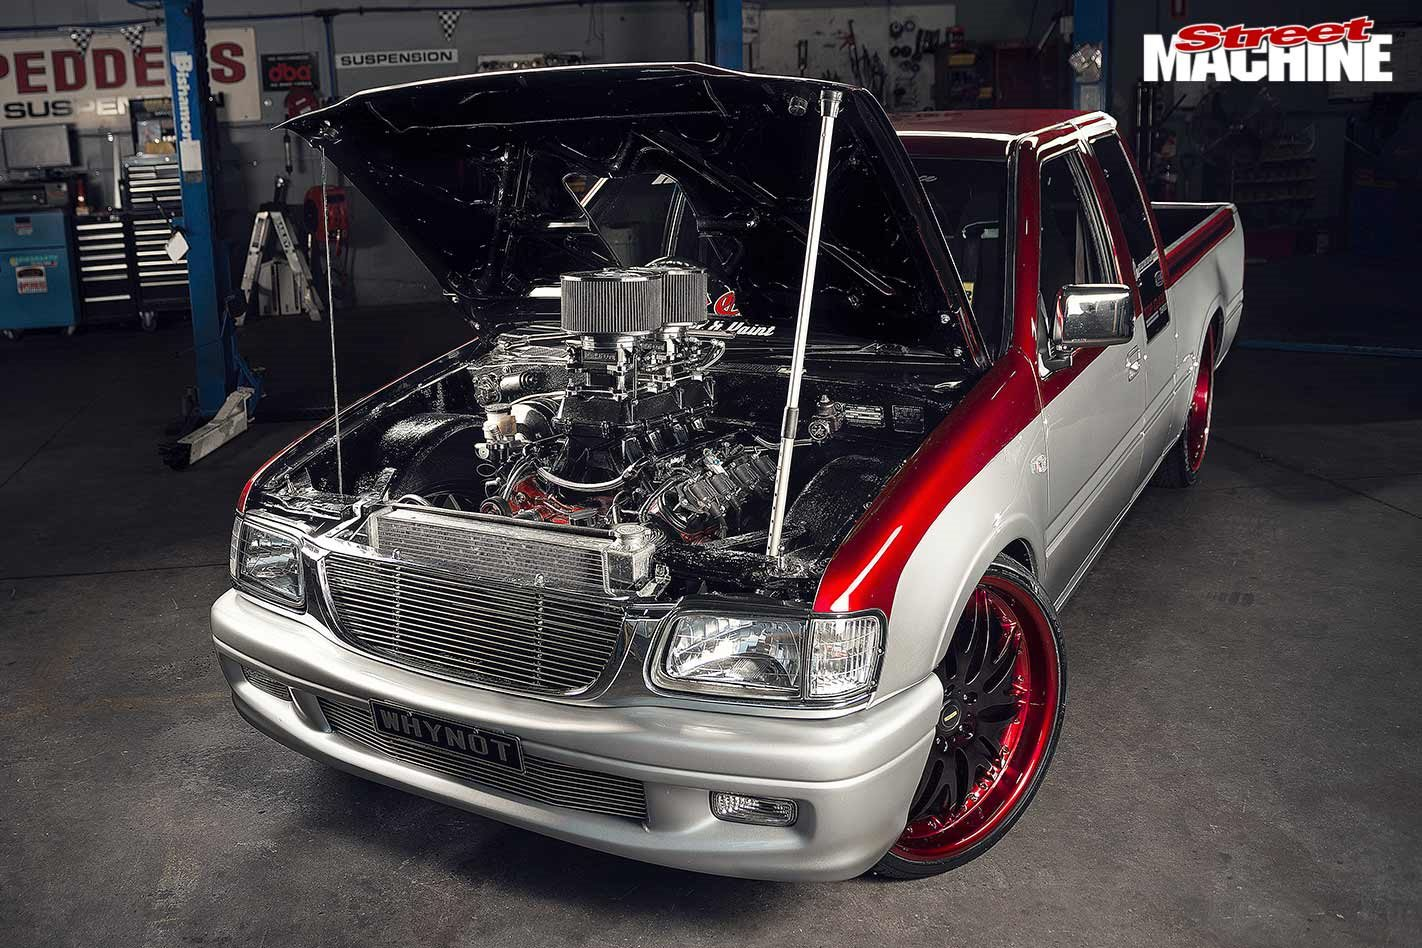 LS1-powered 1996 Holden TF Rodeo space cab - WHYNOT